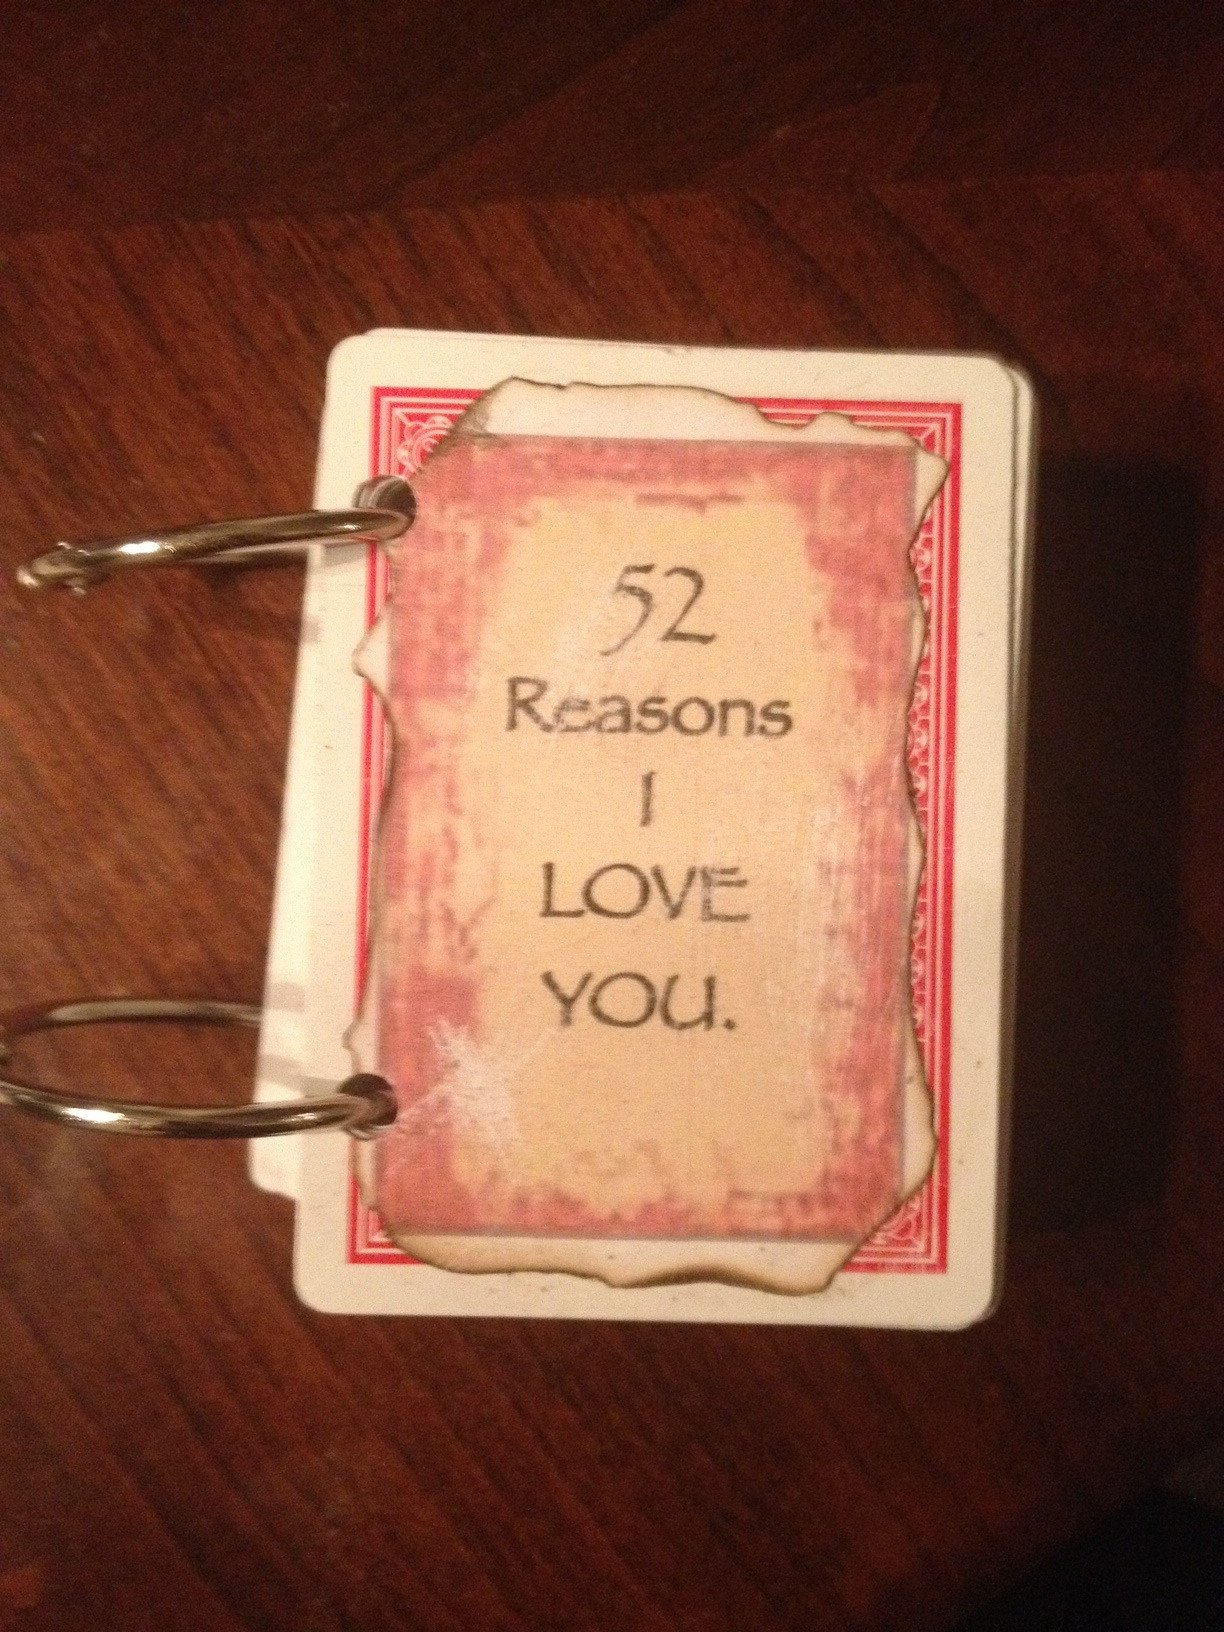 Reasons I Love You Template 52 Reasons I Love You